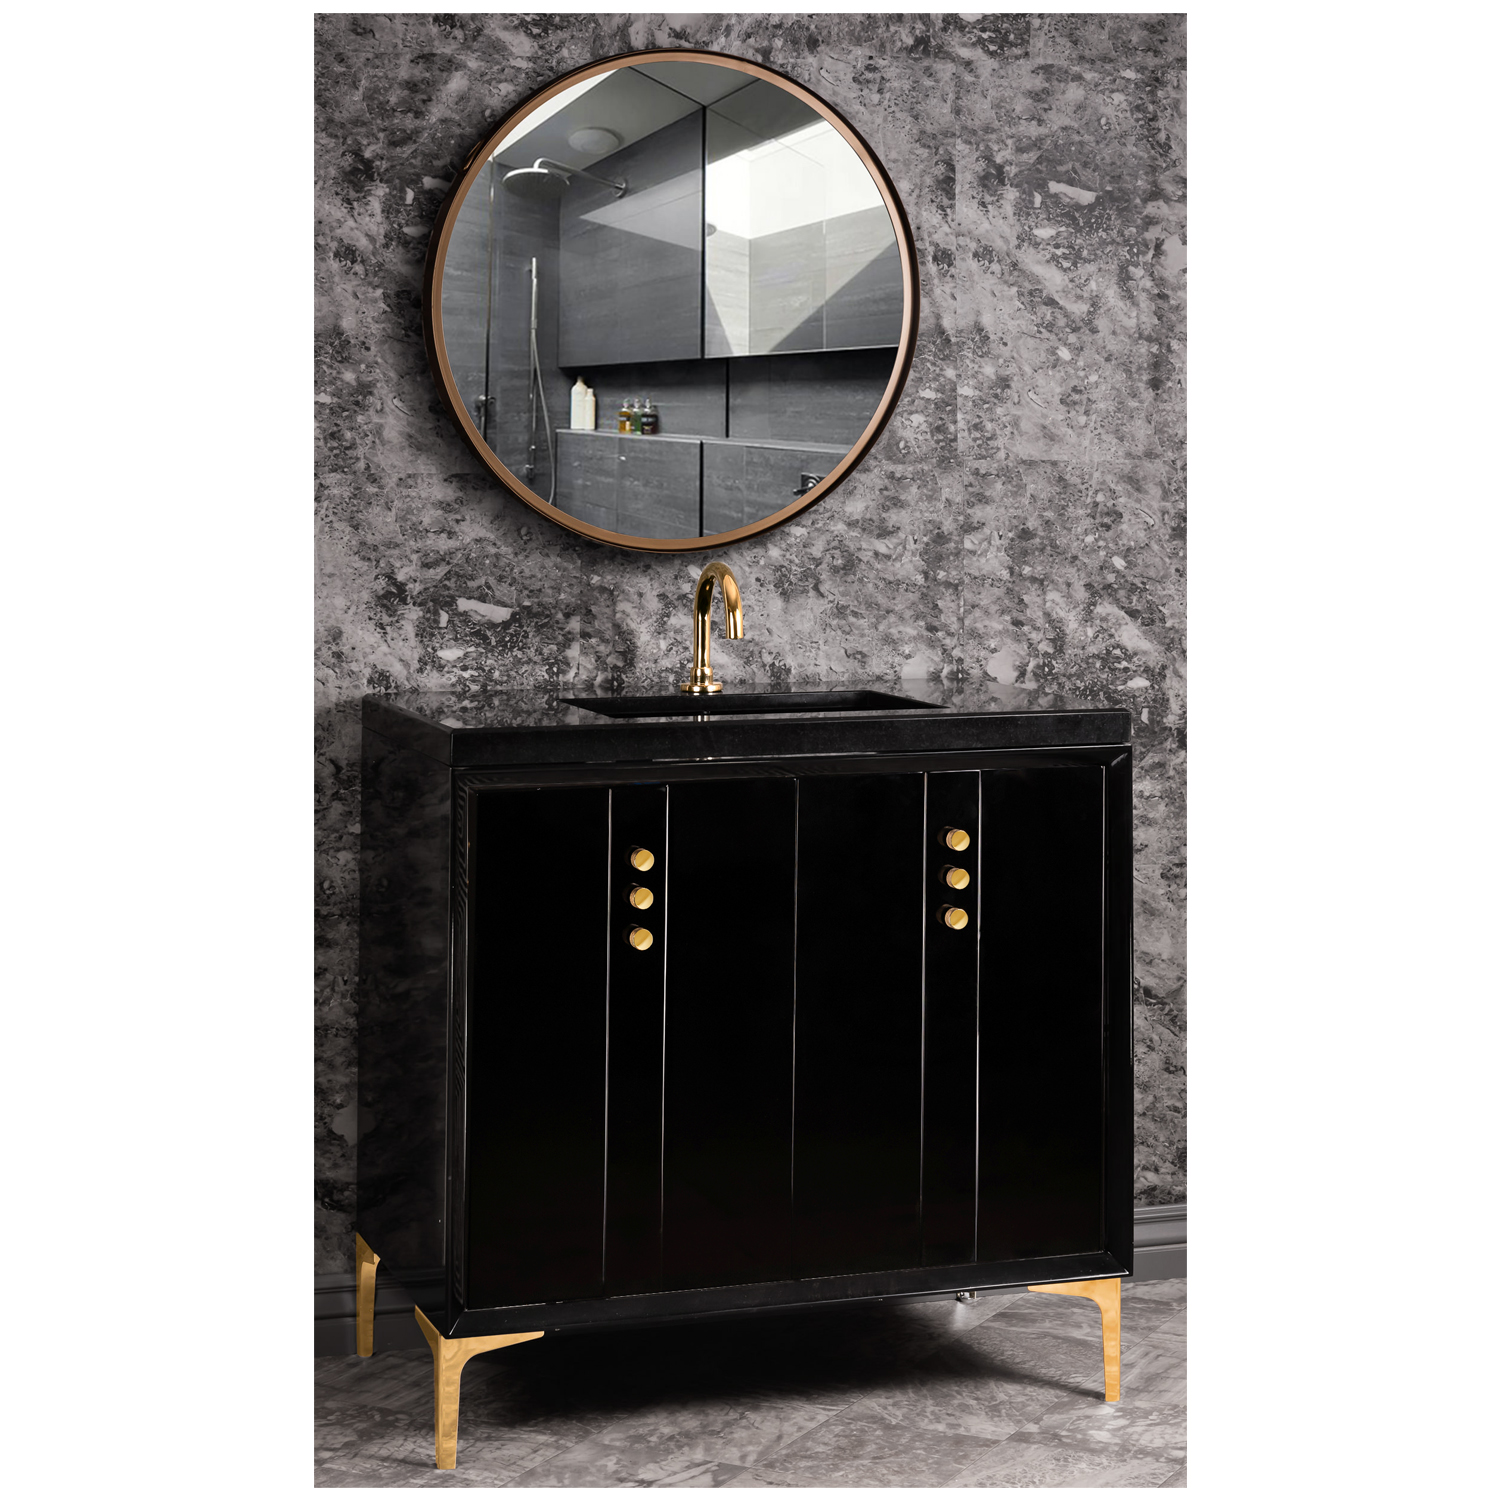 "VAN36B-009 36"" Black Tuxedo With Buttons - Shown with PB (Polished Brass)"